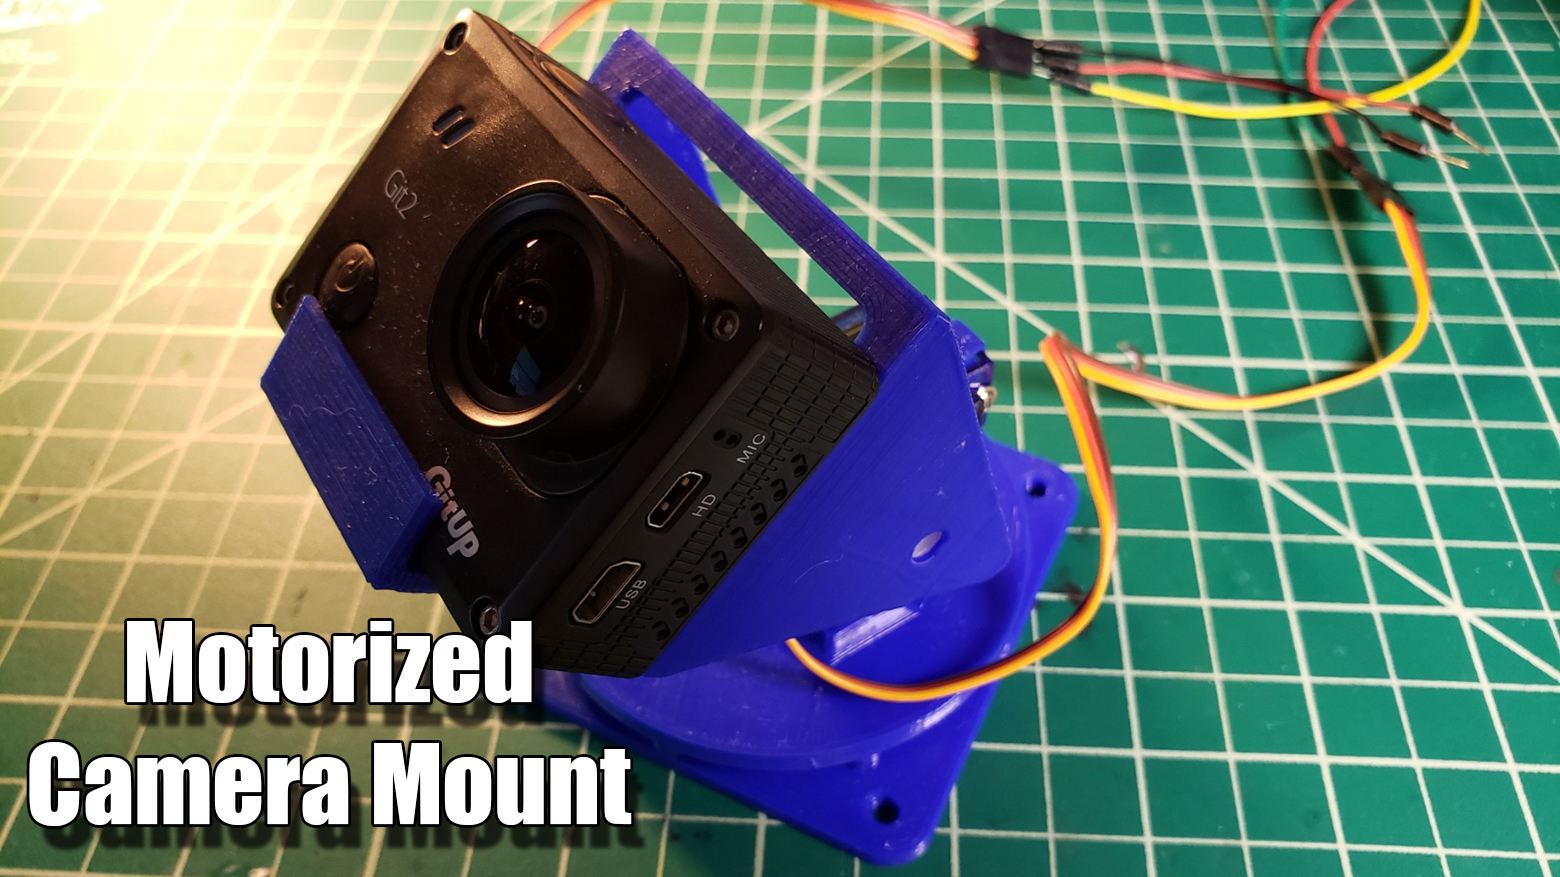 Motorized Pan and Tilt Gopro Mount